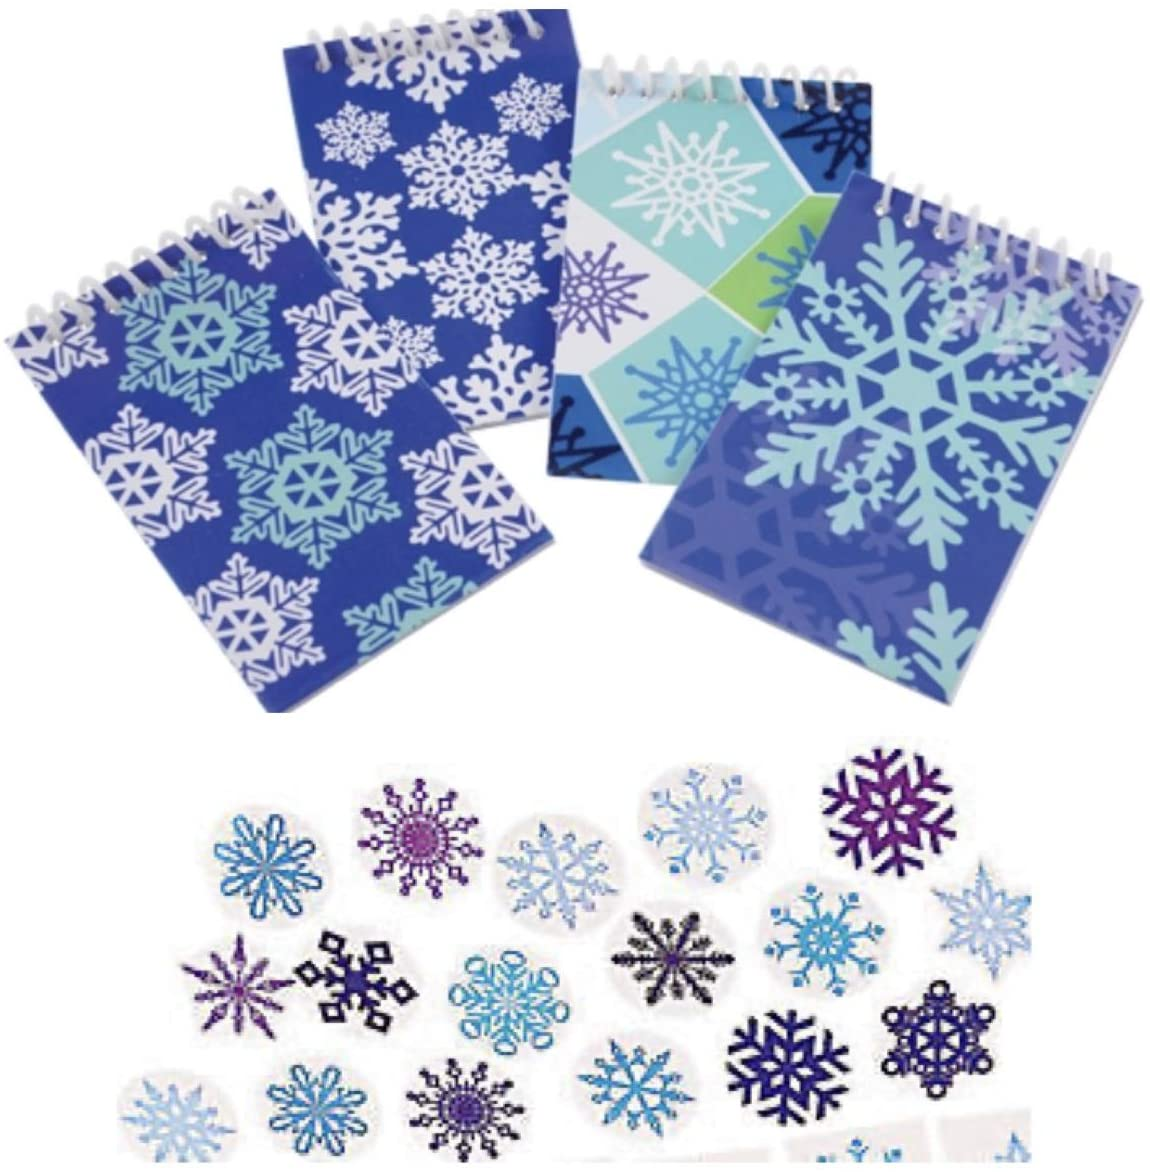 2 Dozen (24) Snowflake Mini NOTEBOOKS & 48 Stickers - Seals - Christmas Winter Holiday - Classroom Teacher School Supplies Party Favors Stocking Stuffers